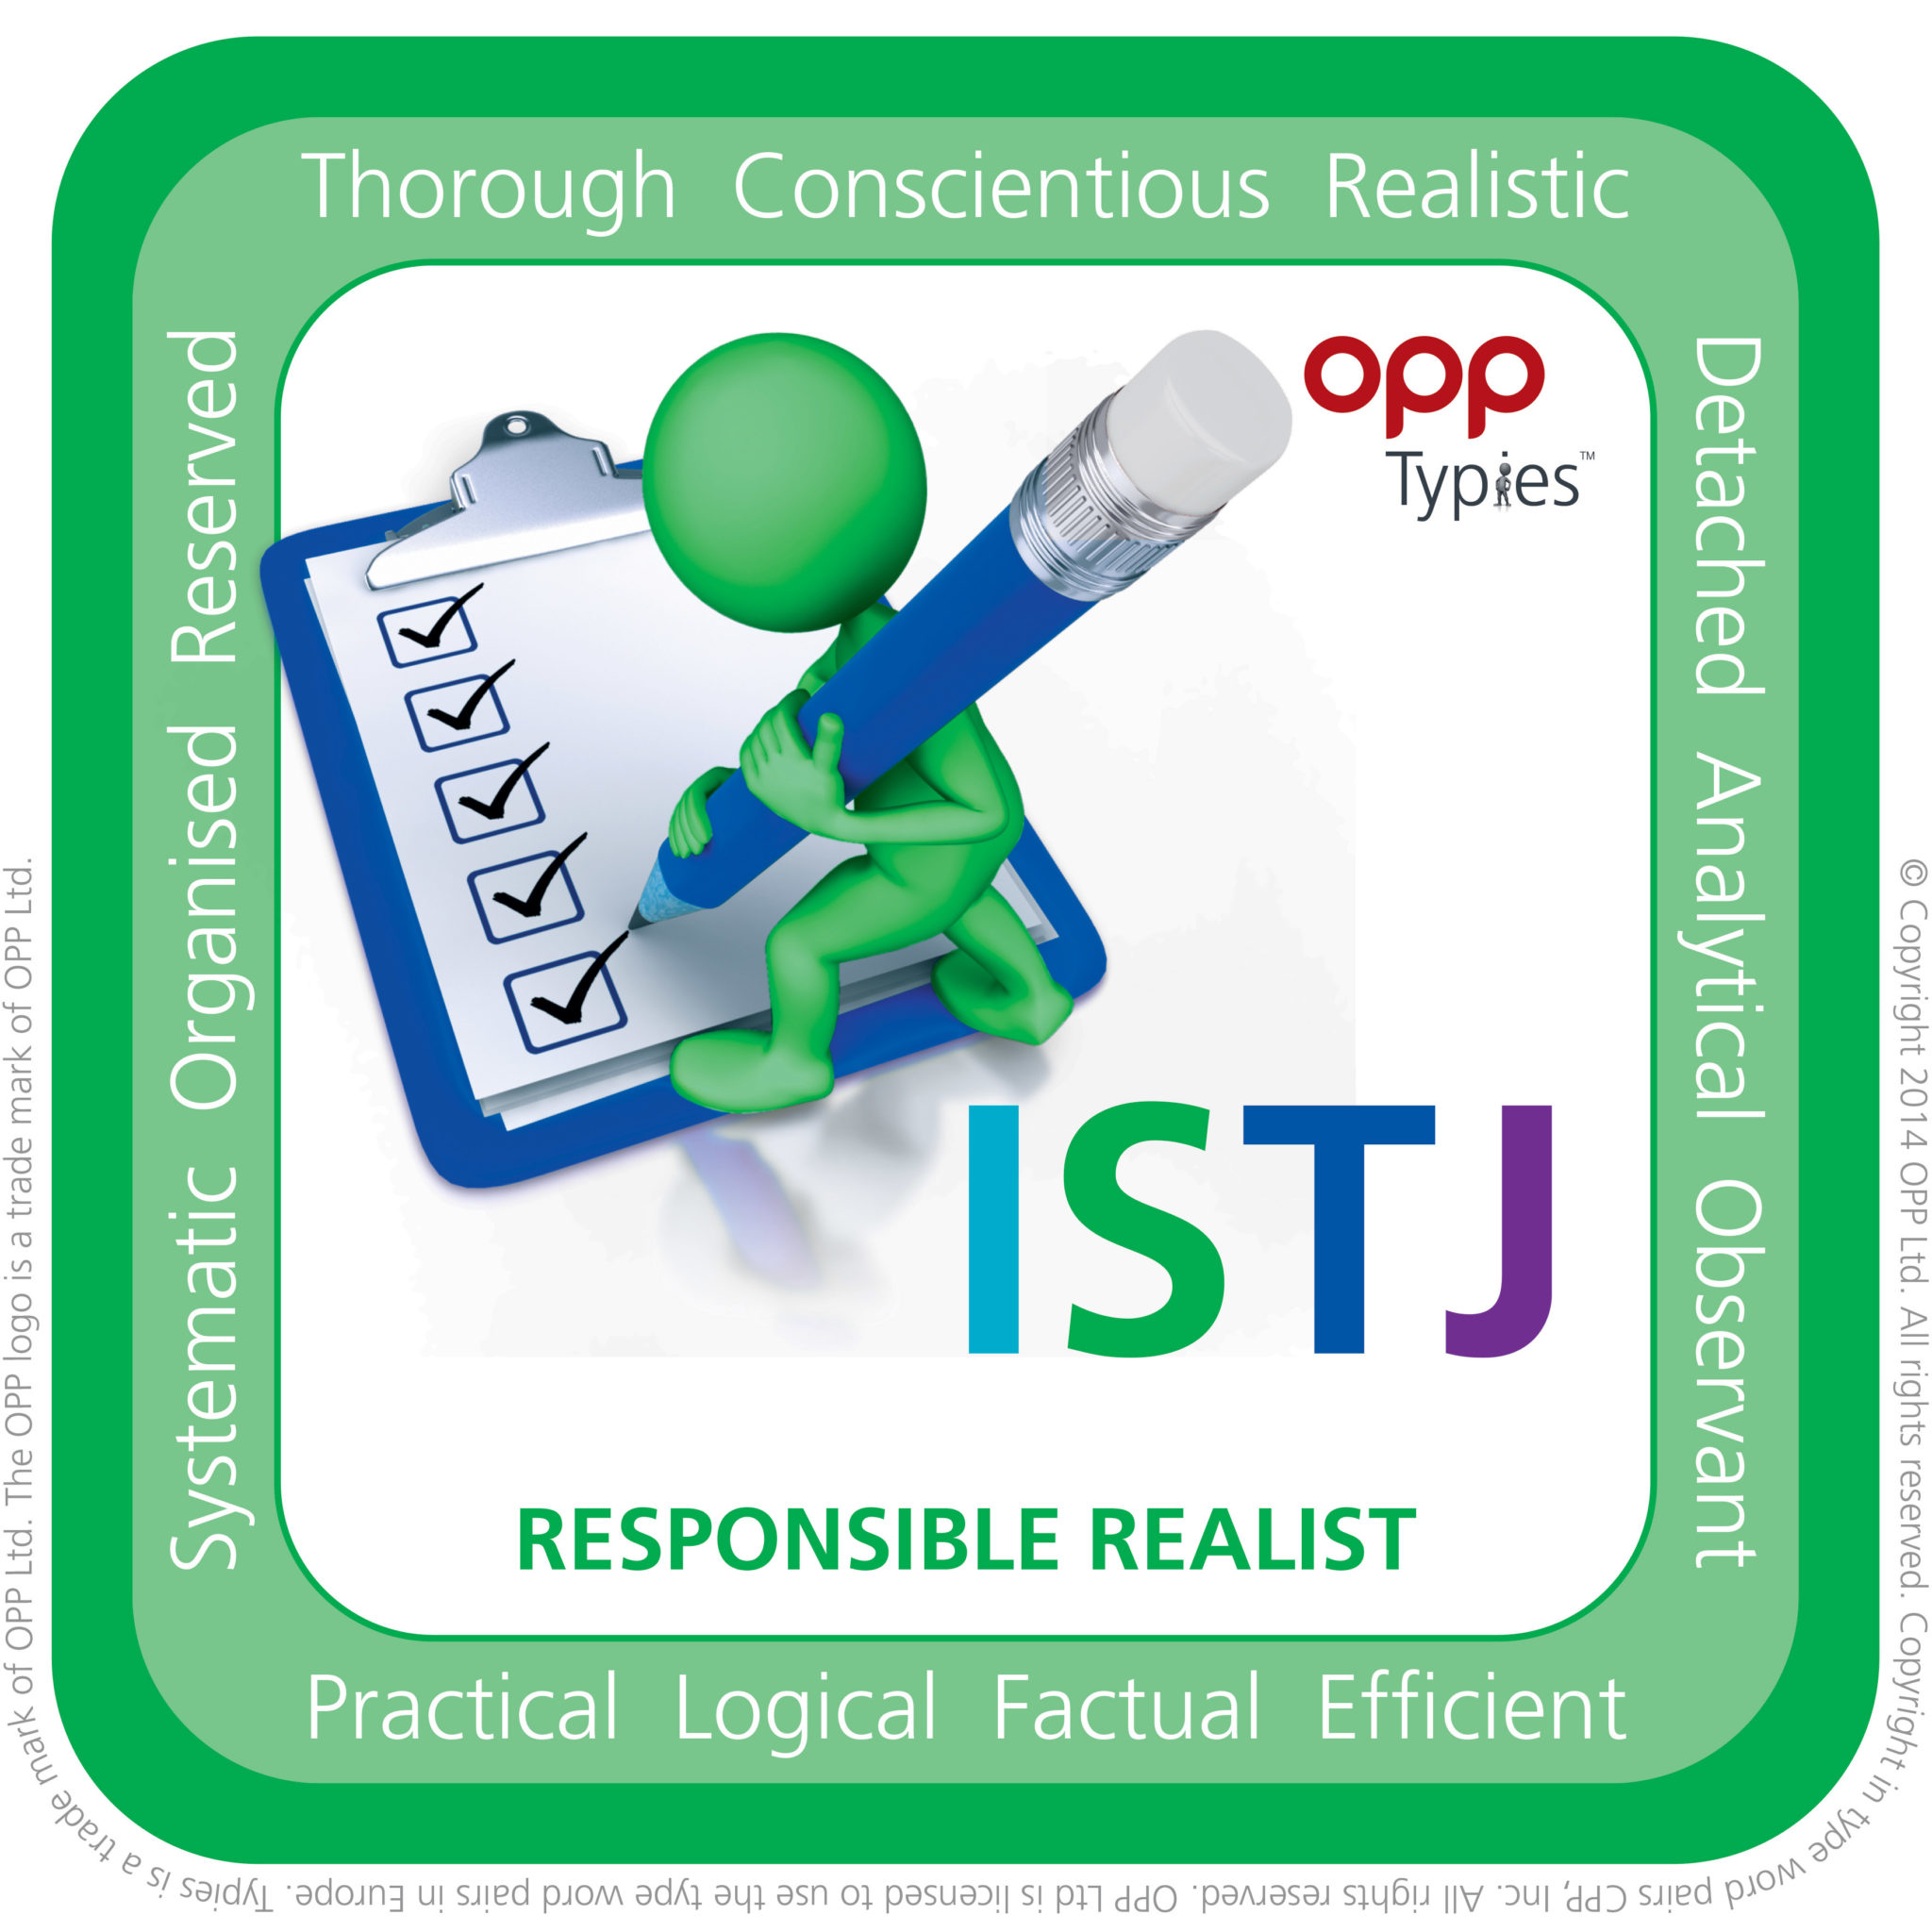 ISTJ Typie, willerby hill hr, hr advice hull, mbti east yorkshire, mbti hull